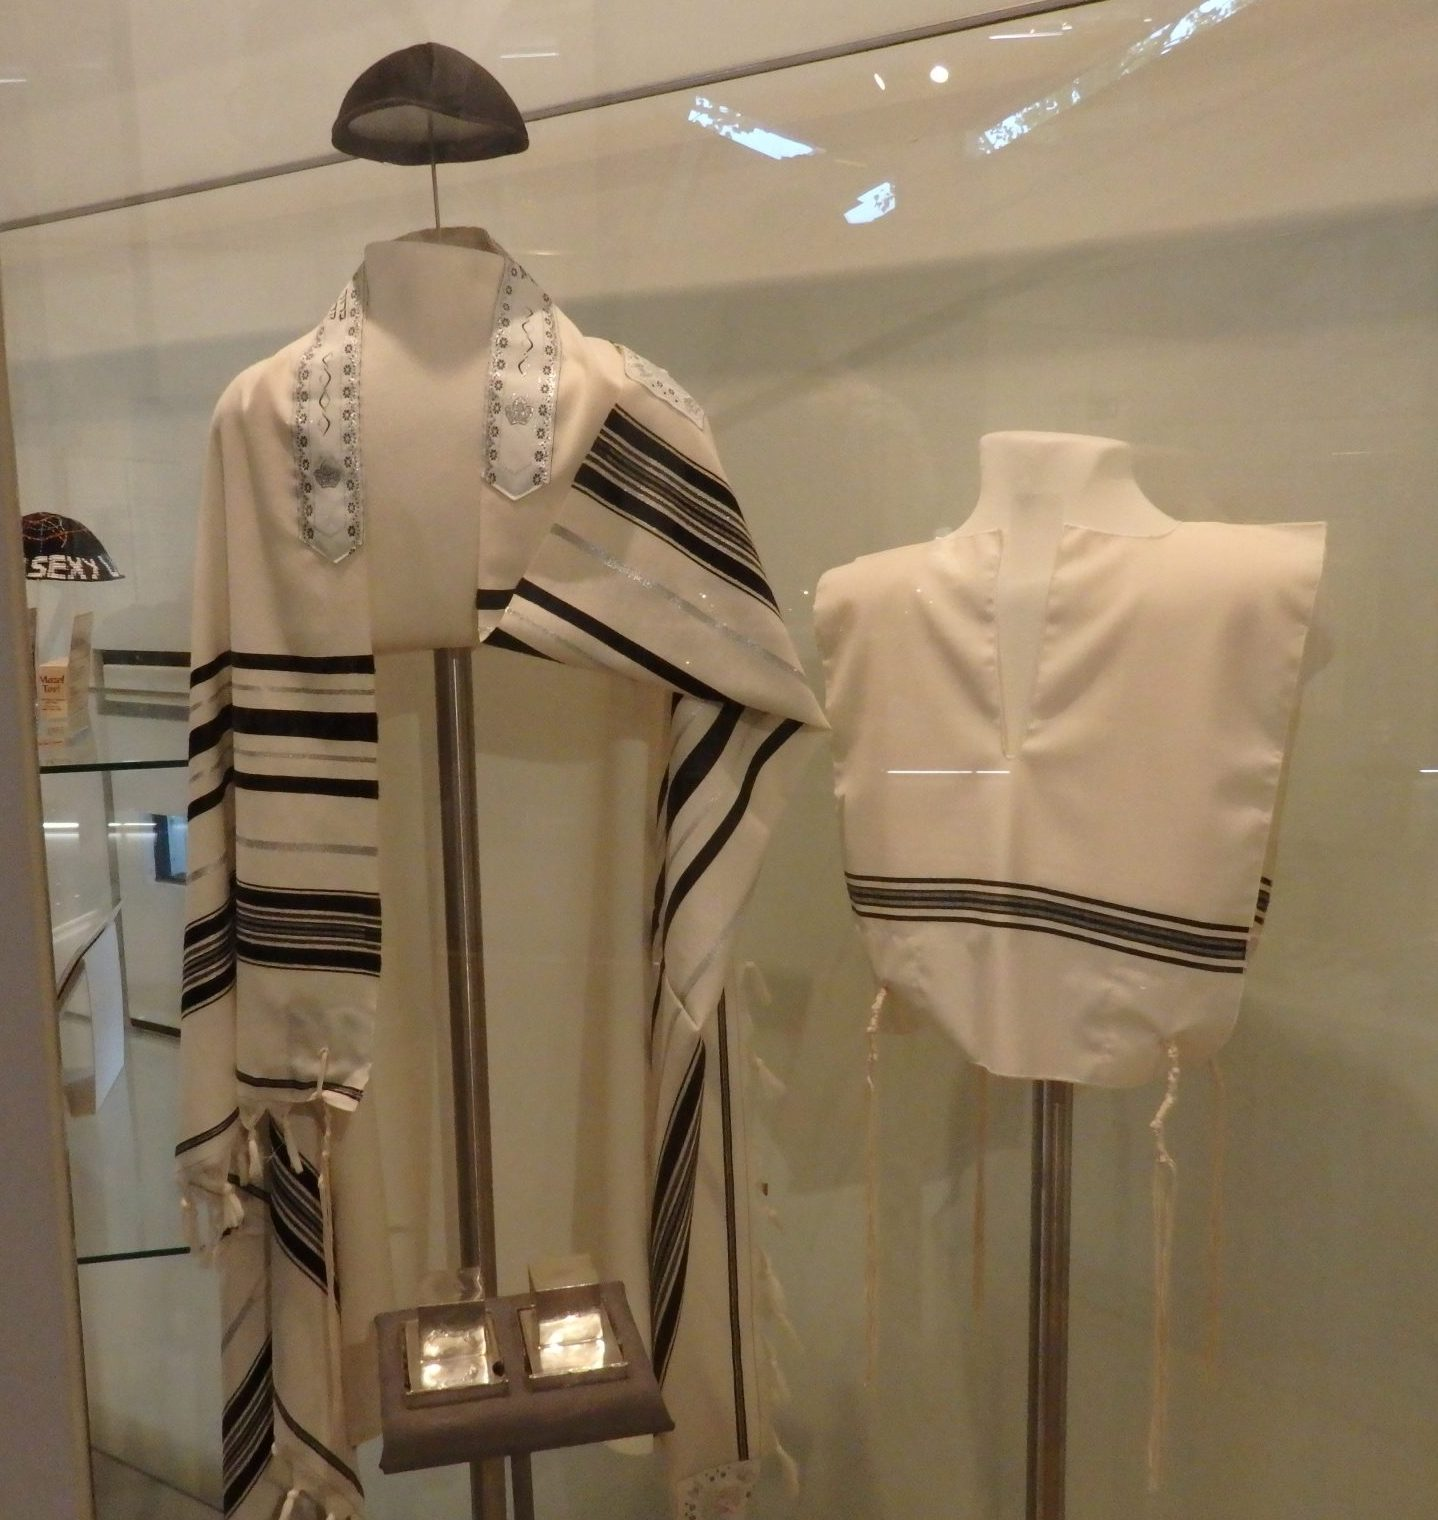 Jewish prayer shawls, called tallit. The museum includes explanations of Jewish culture and tradition, as well as tracing how it changed over time. Jewish Museum Berlin